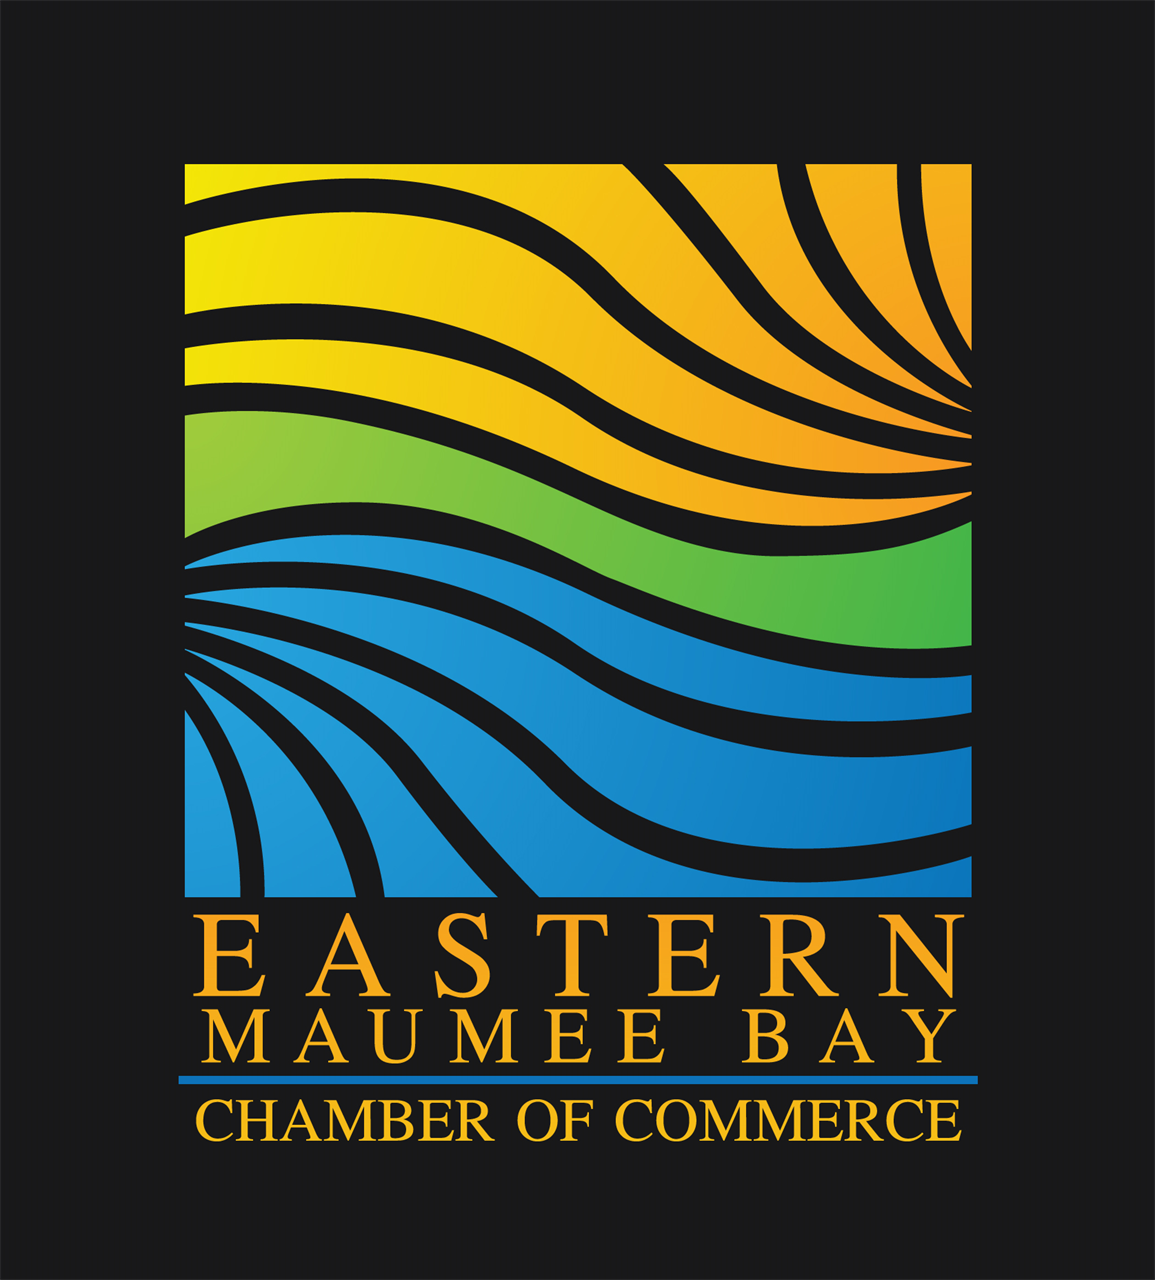 EASTERN MAUMEE BAY CHAMBER OF COMMERCE